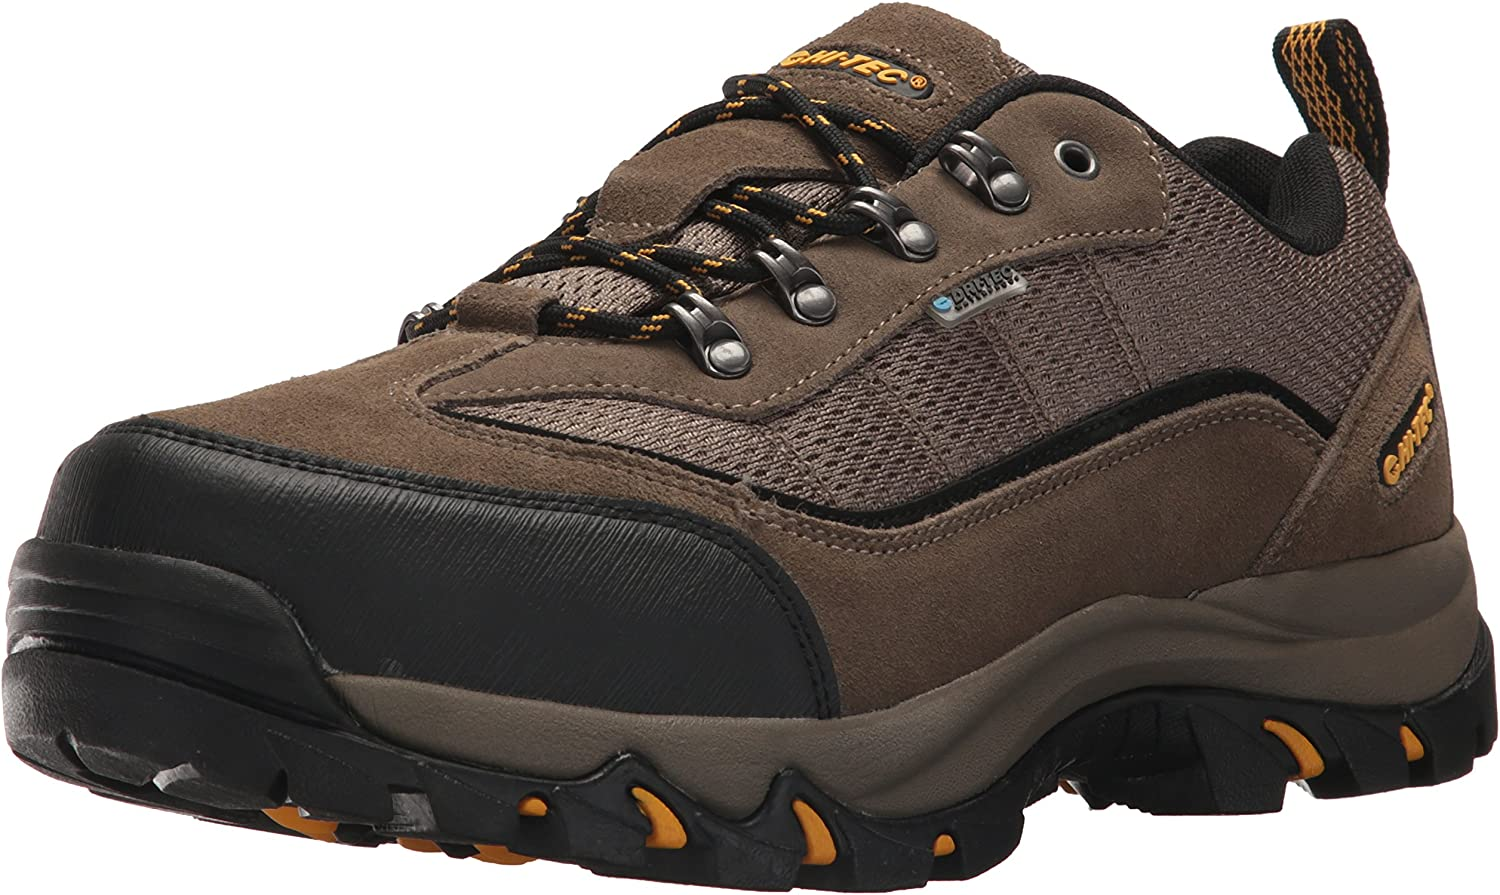 HI-TEC Men's Skamania Low Waterproof Hiking Shoe